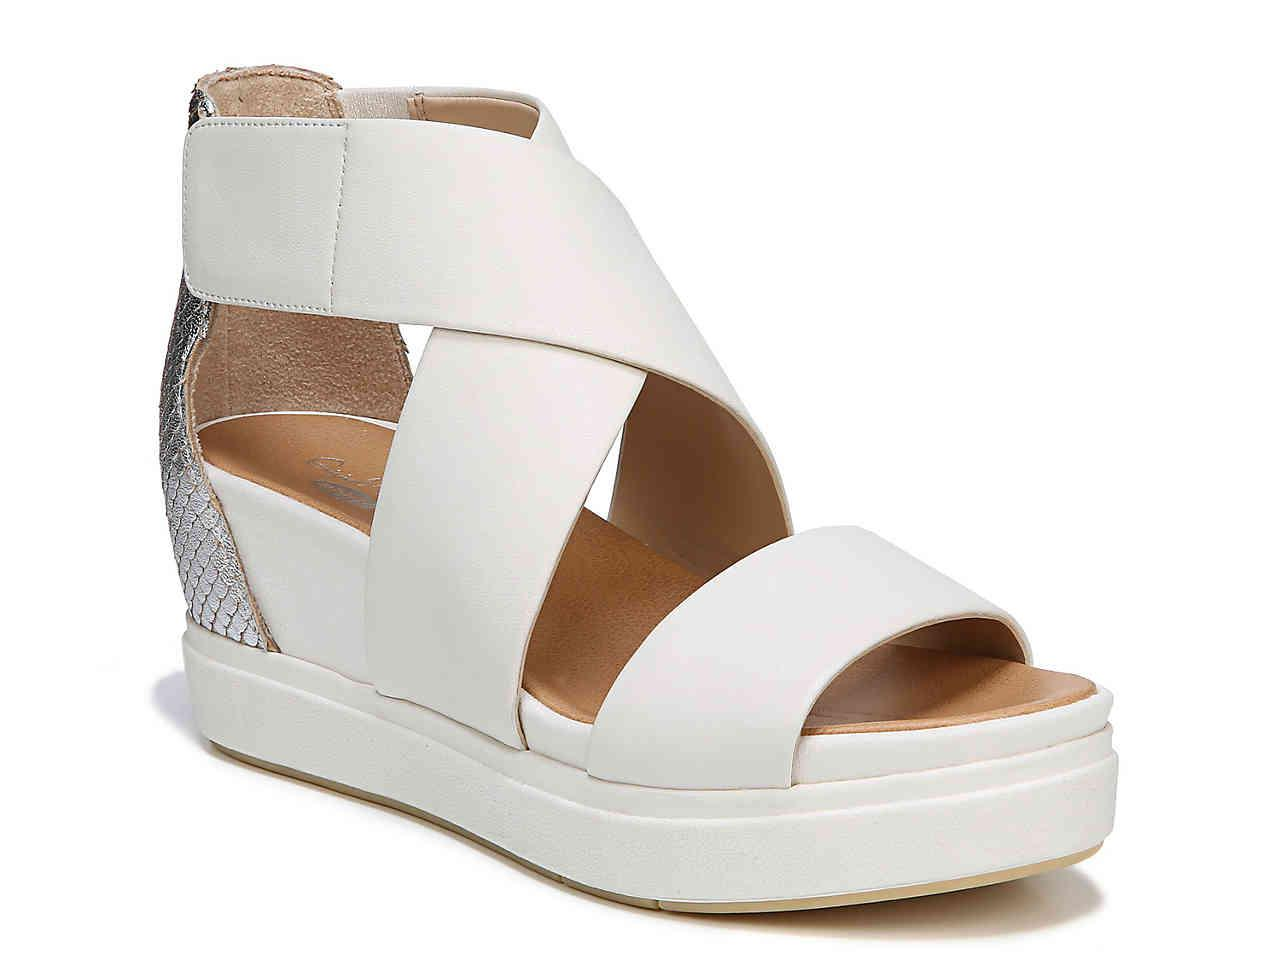 0ebc879da Lyst - Dr. Scholls Scout High Wedge Sandal in White - Save ...